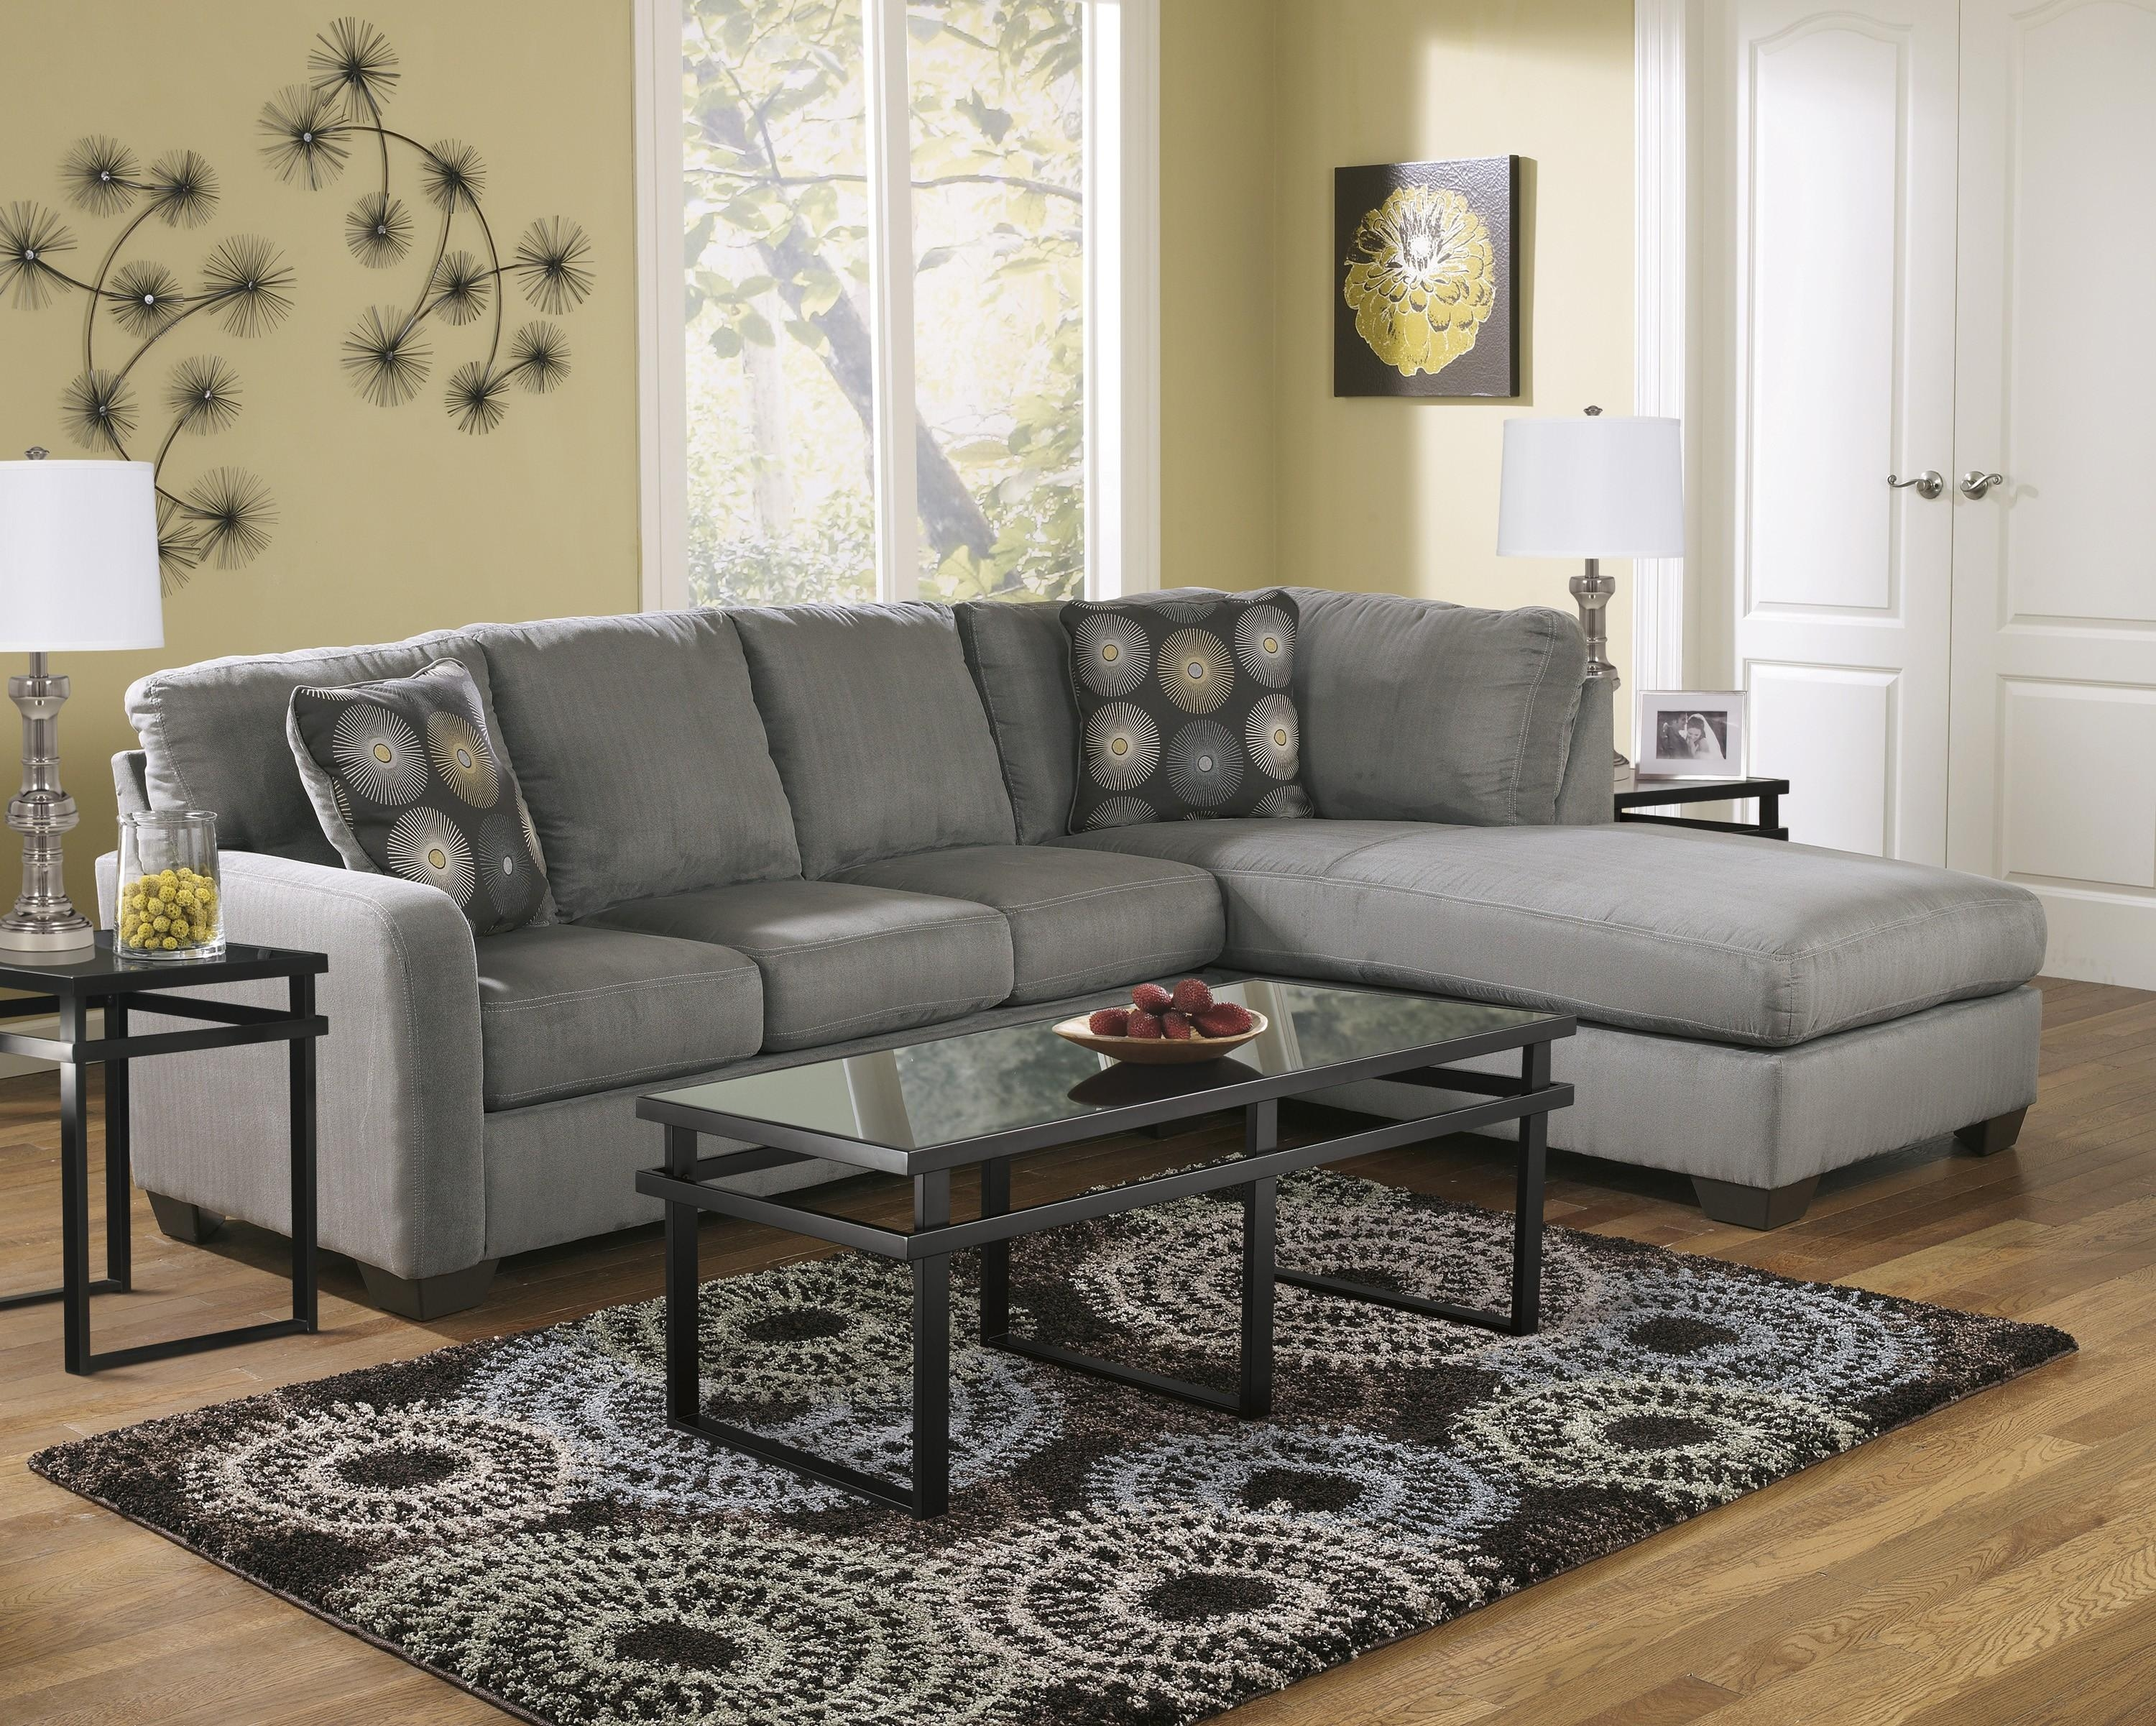 Zella Charcoal 2-Piece Sectional Sofa For $545.00 - Furnitureusa intended for Small 2 Piece Sectional